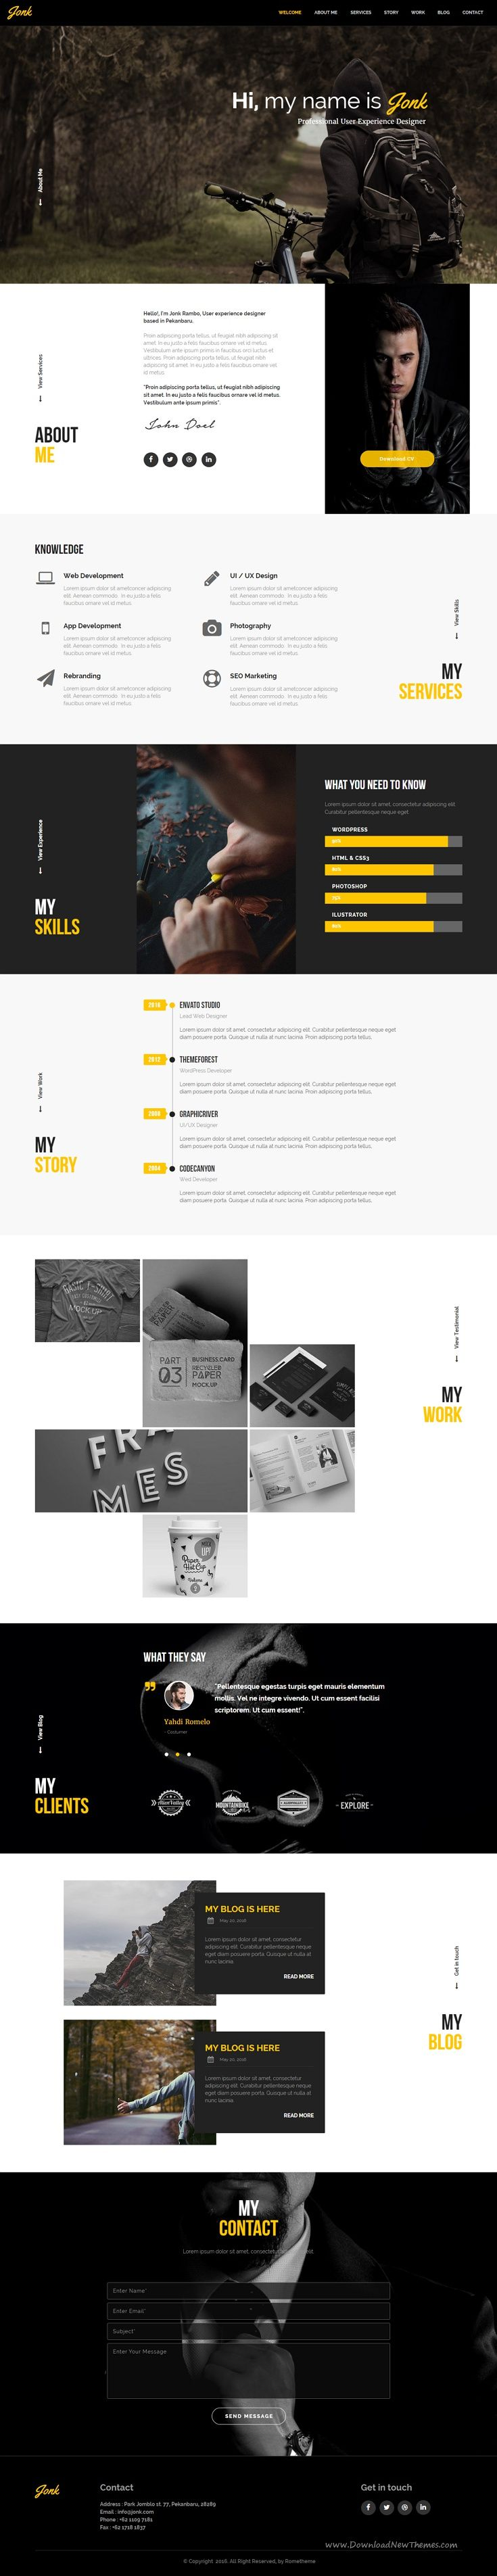 JONK is multipurpose muse template options for web developer or designer who needs a web template to promote and introduce their business company or clients. JONK is designed for Freelancer, agency, or personal portfolio. #musetemplate